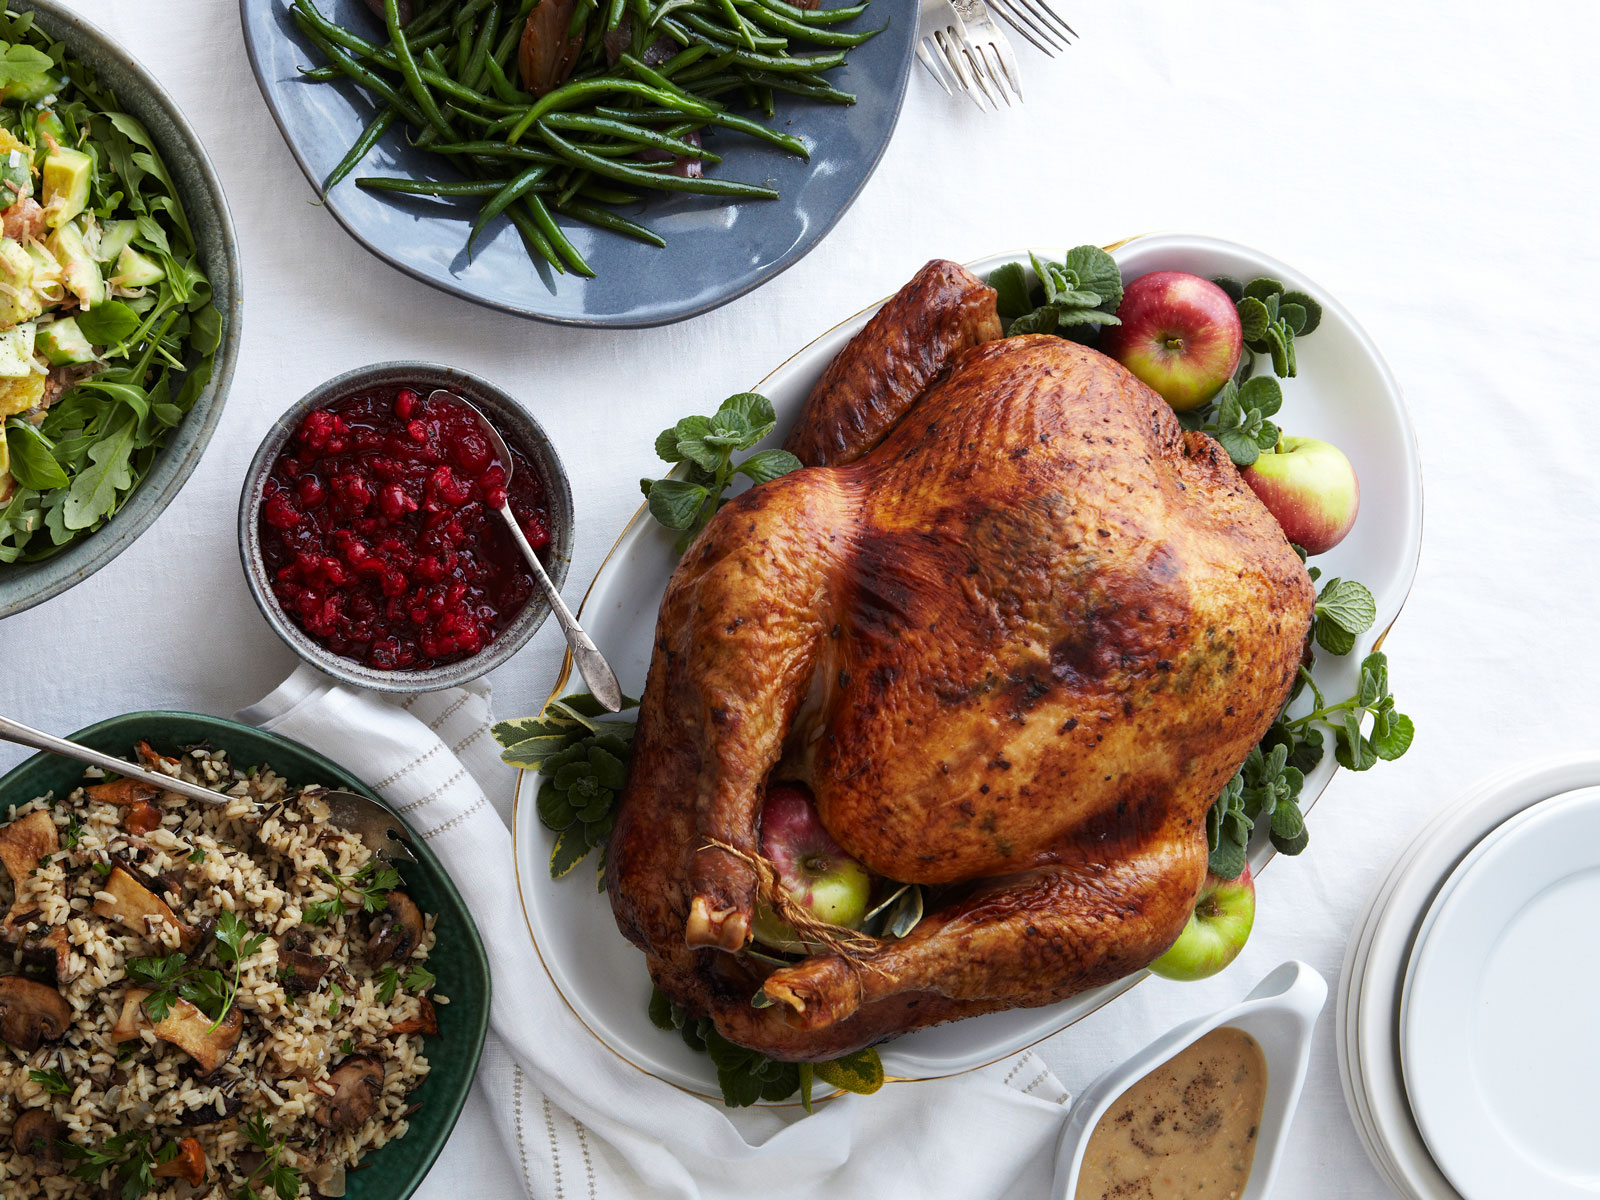 Chefs Reveal Their Favorite Holiday Food Traditions